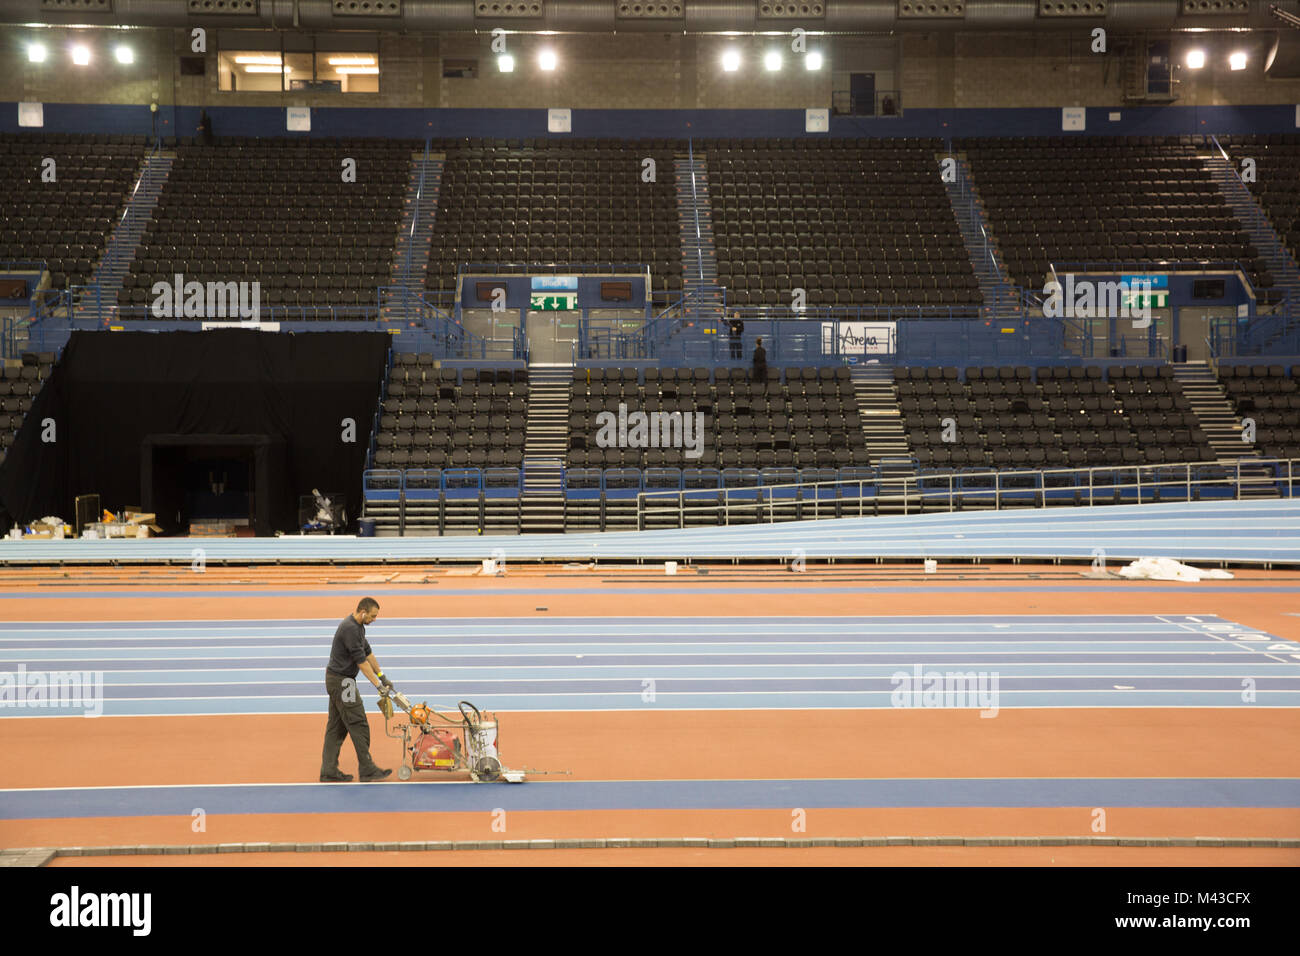 The Birmingham Arena, being prepared for the World Indoor Athletic Championships to be held at the start of March - Stock Image